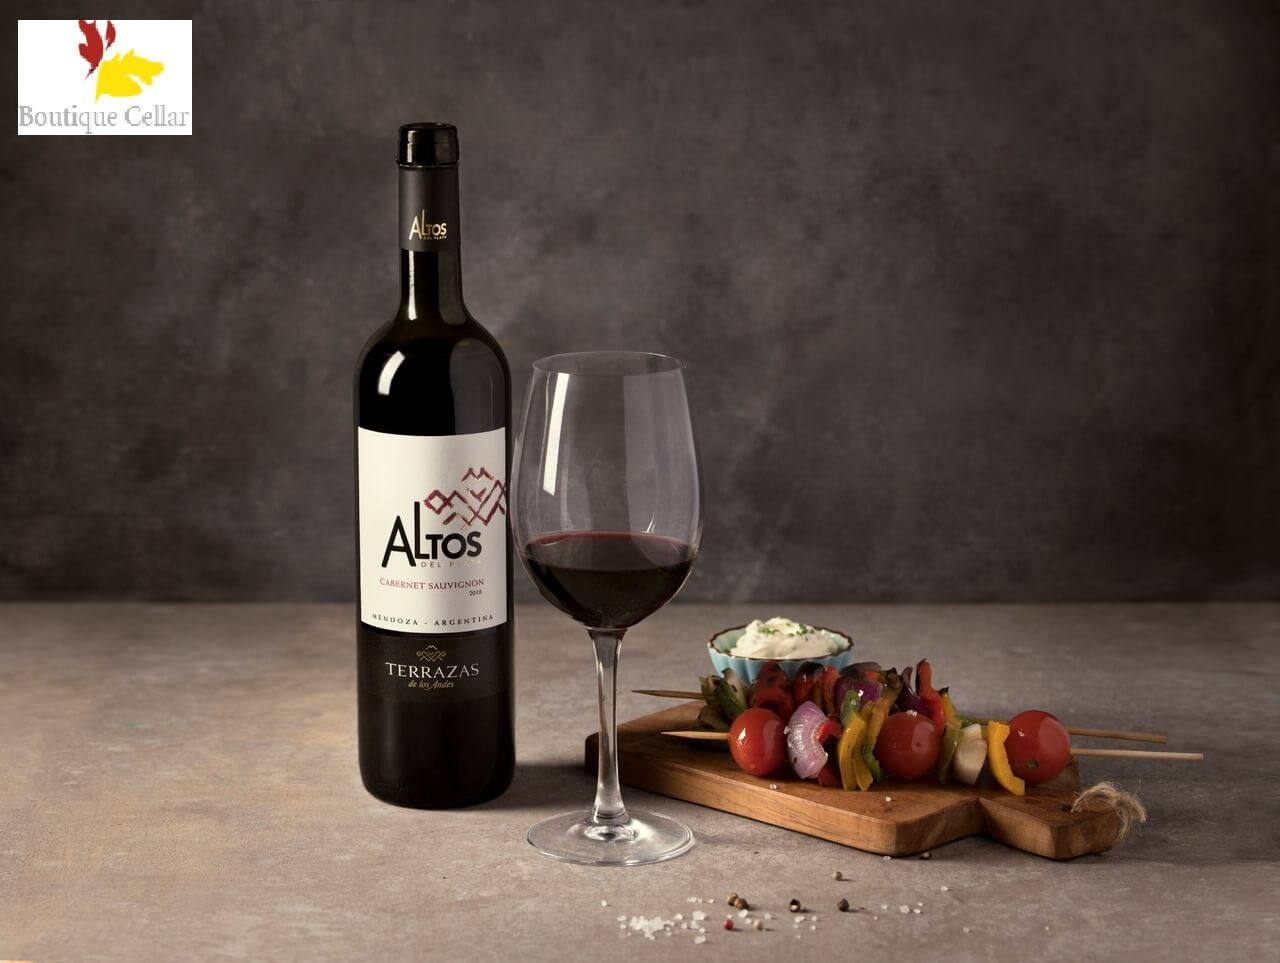 TERRZAS ALTOS CABERNET SAUVIGNON - 750ml